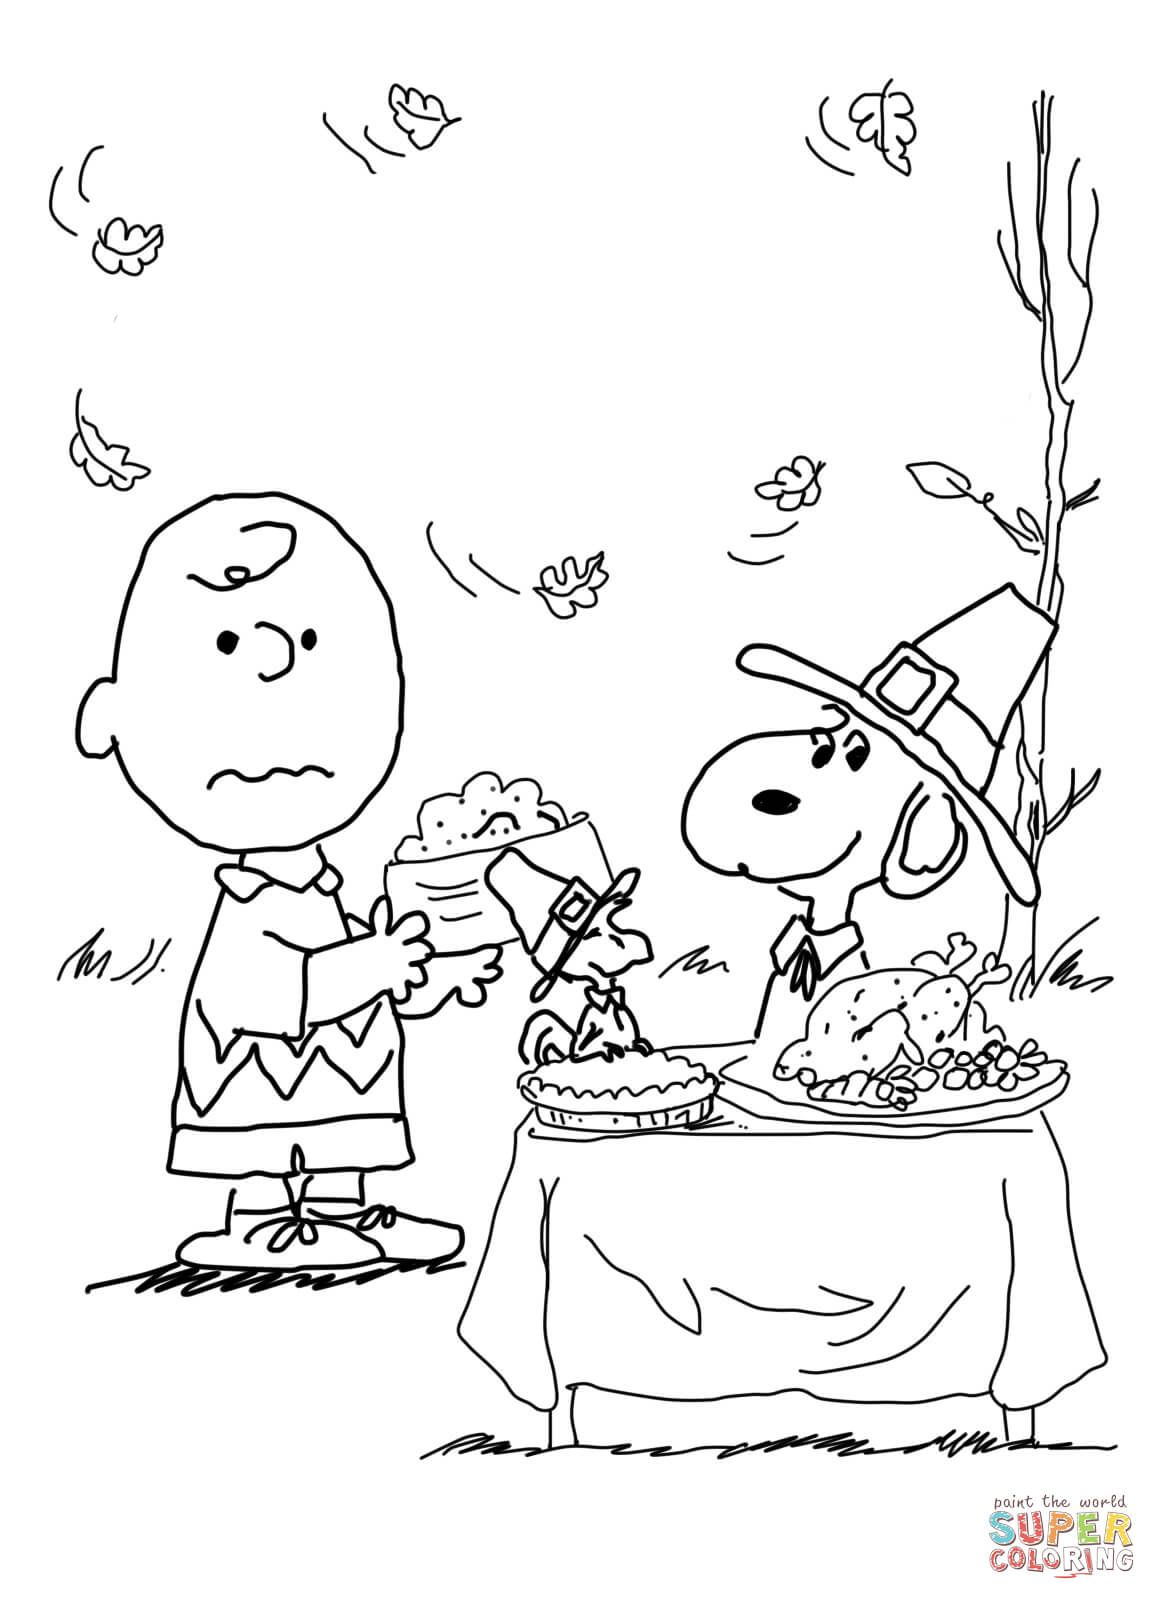 Charlie Brown Thanksgiving Coloring Page From Peanuts Category Select From 2756 Thanksgiving Color Charlie Brown Thanksgiving Free Thanksgiving Coloring Pages